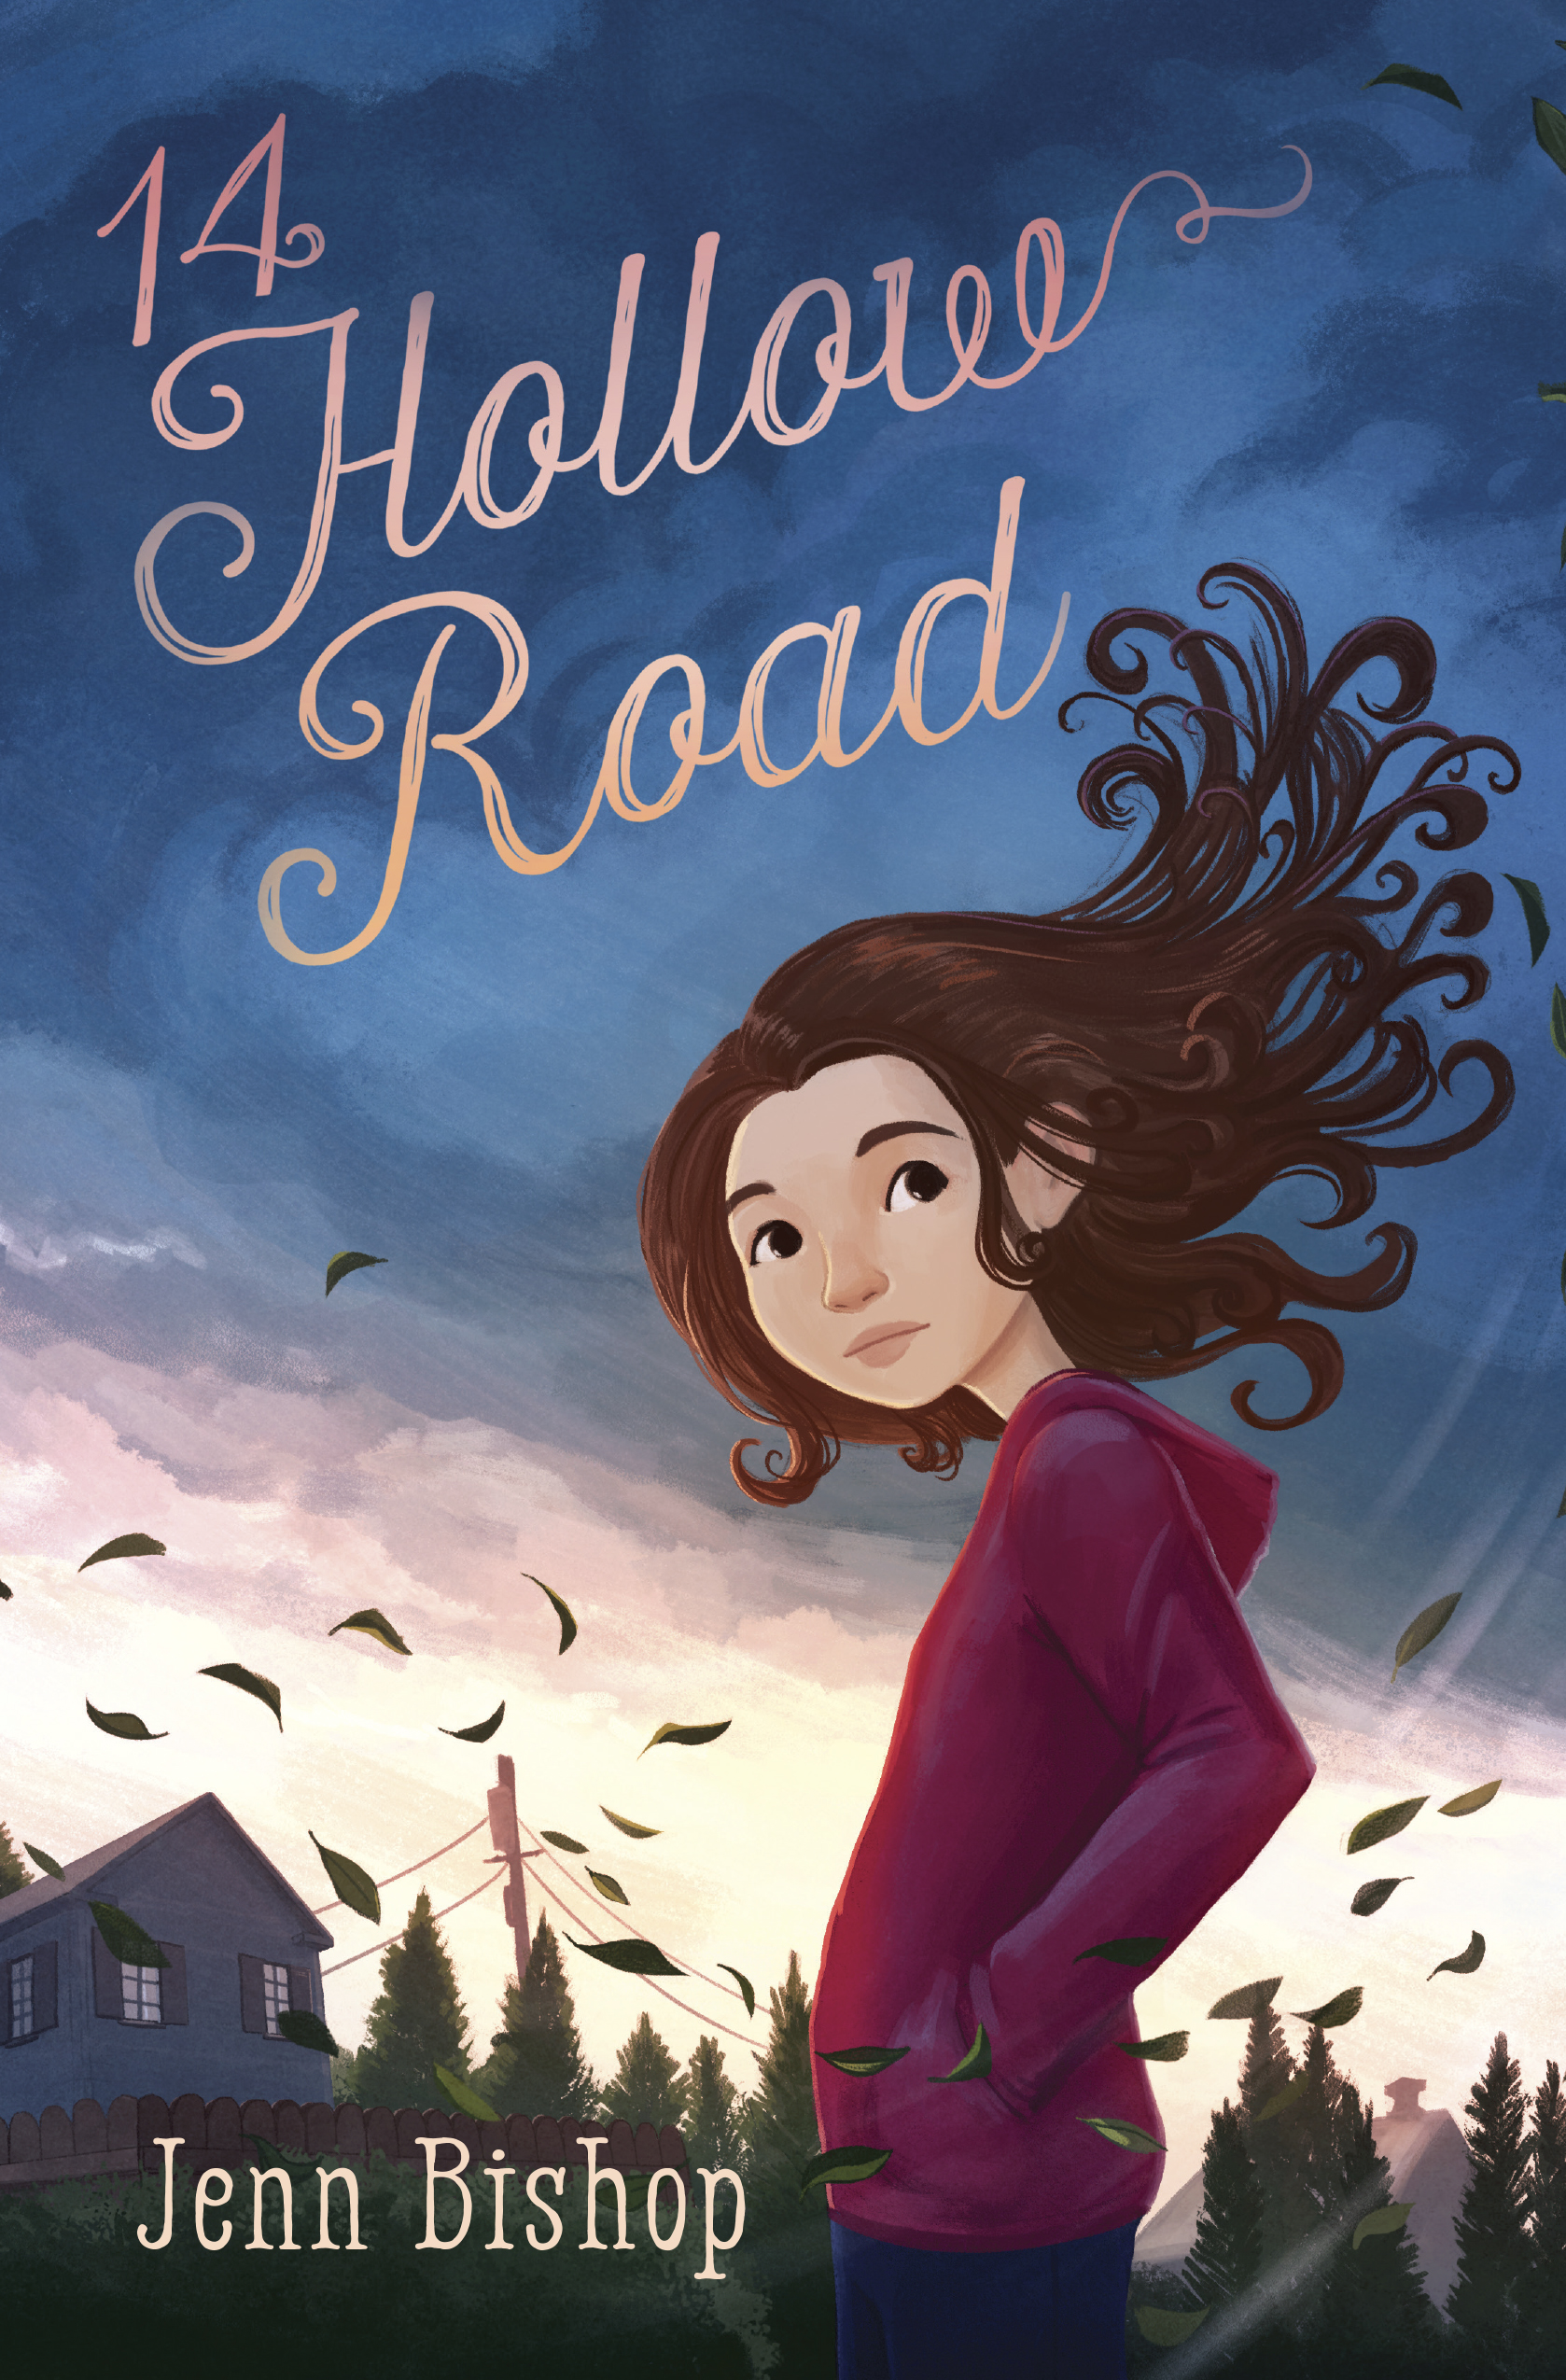 Image result for 14 hollow road